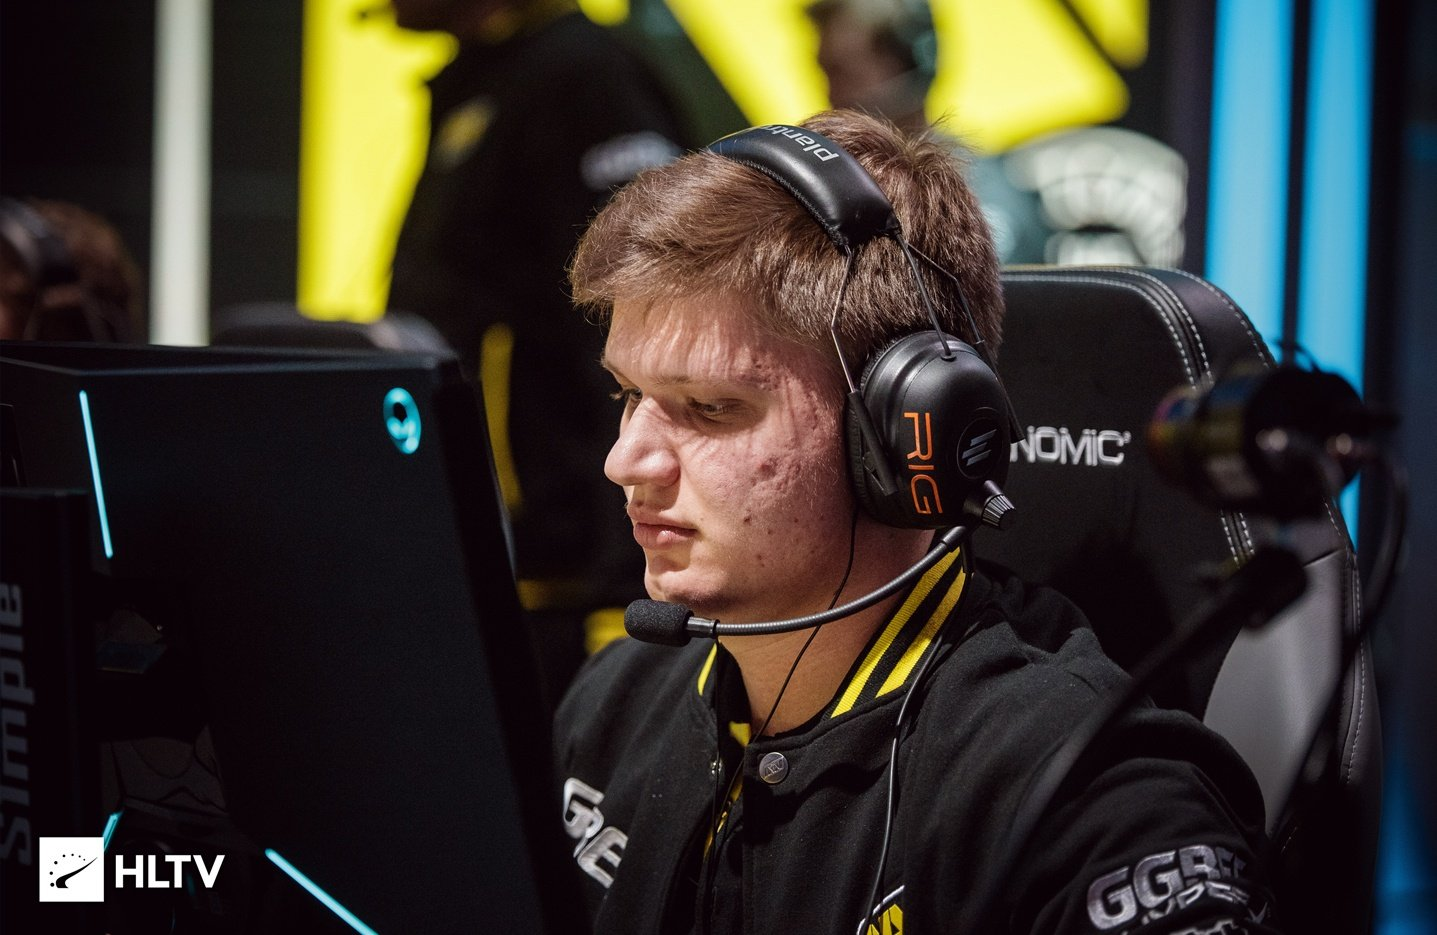 s1mple CS:GO Settings, Gear, Config & Crosshair 2019